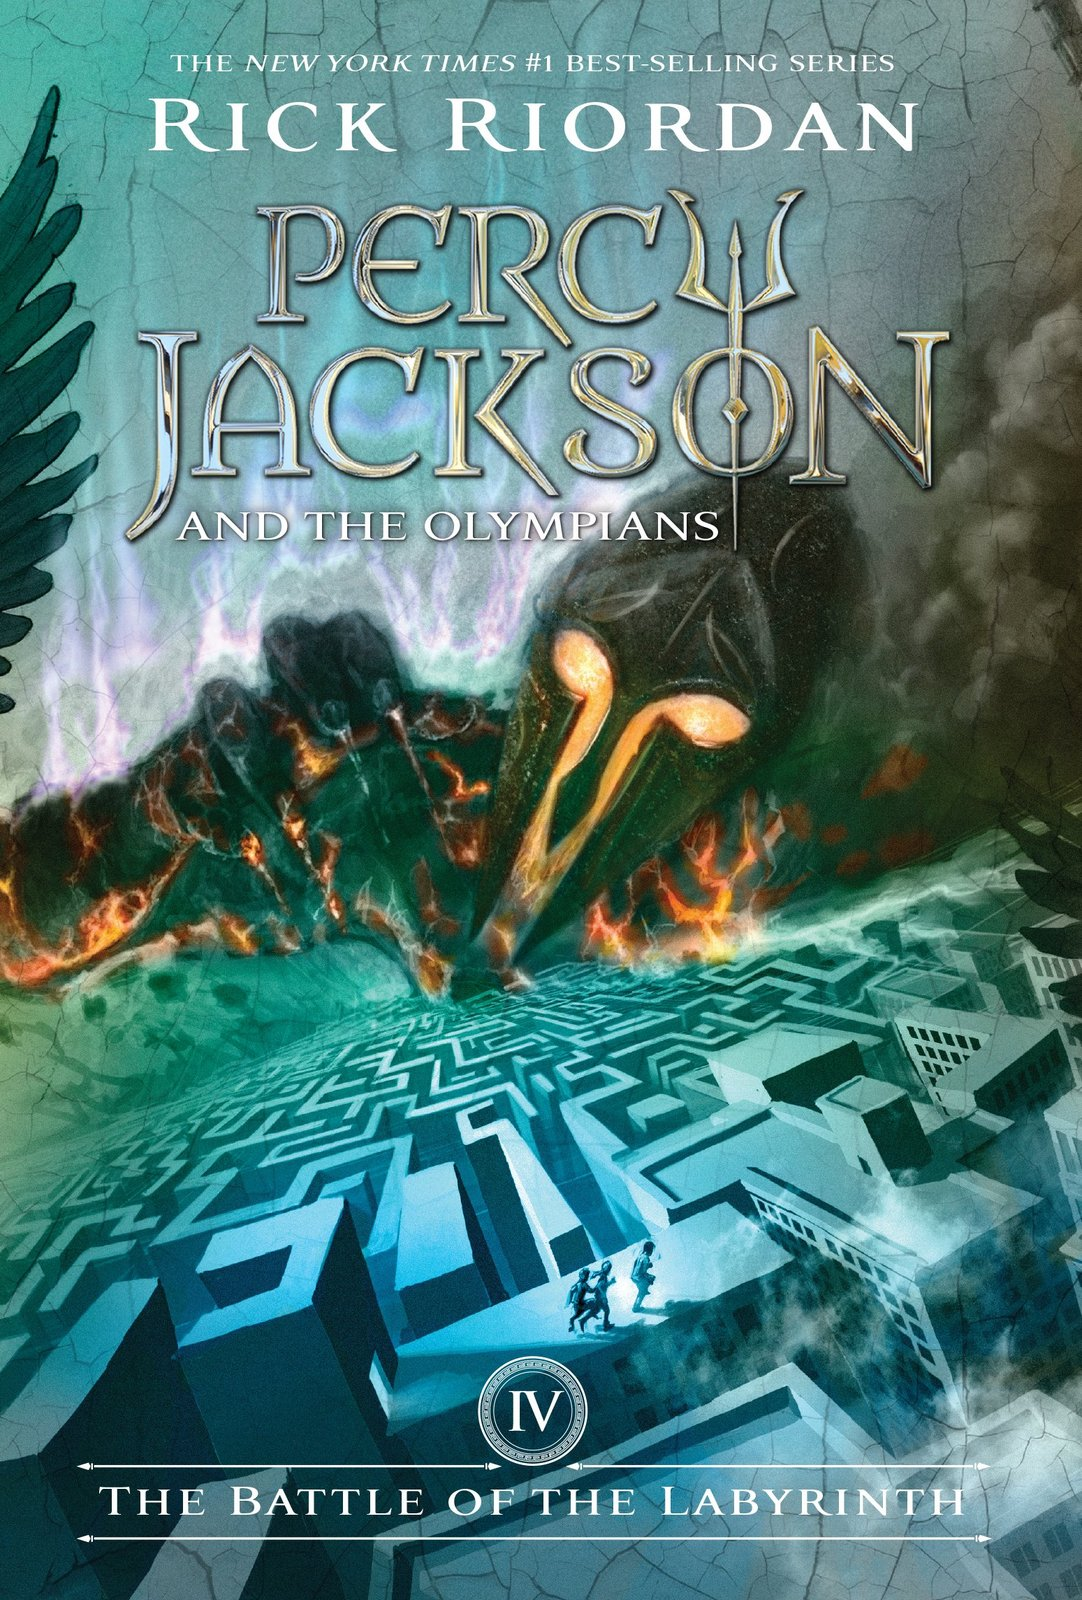 Percy Jackson and the Olympians Boxed Set (All 5 Books + Poster) by Rick Riordan image